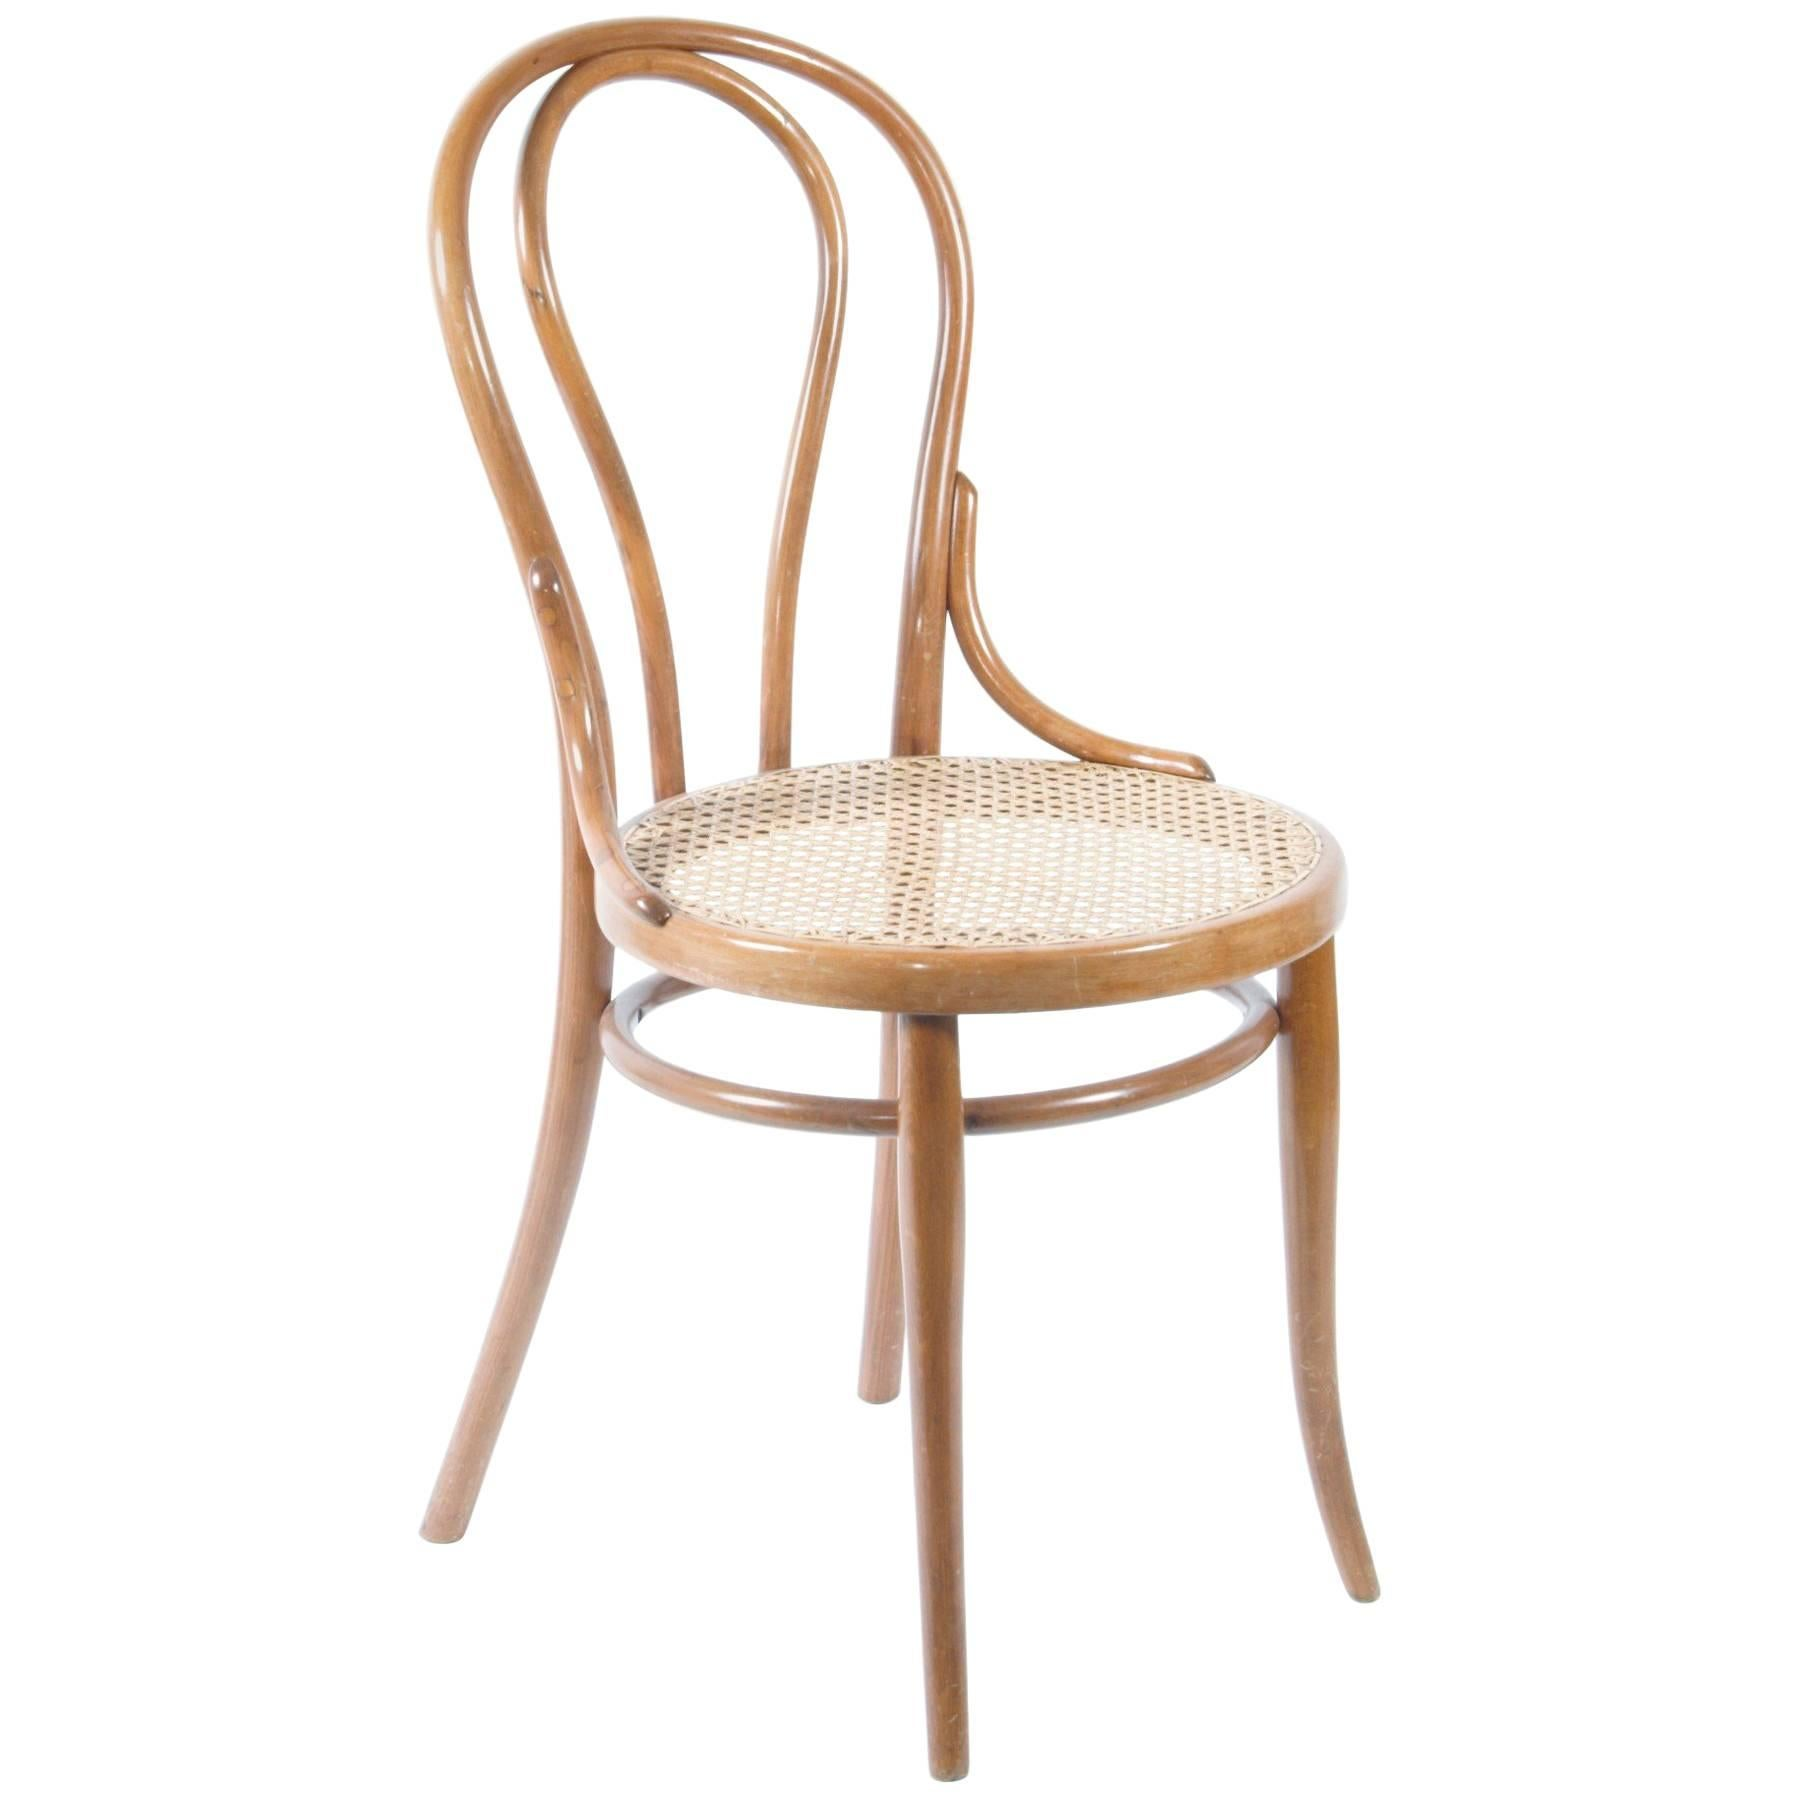 Superieur Thonet Chair No. 18